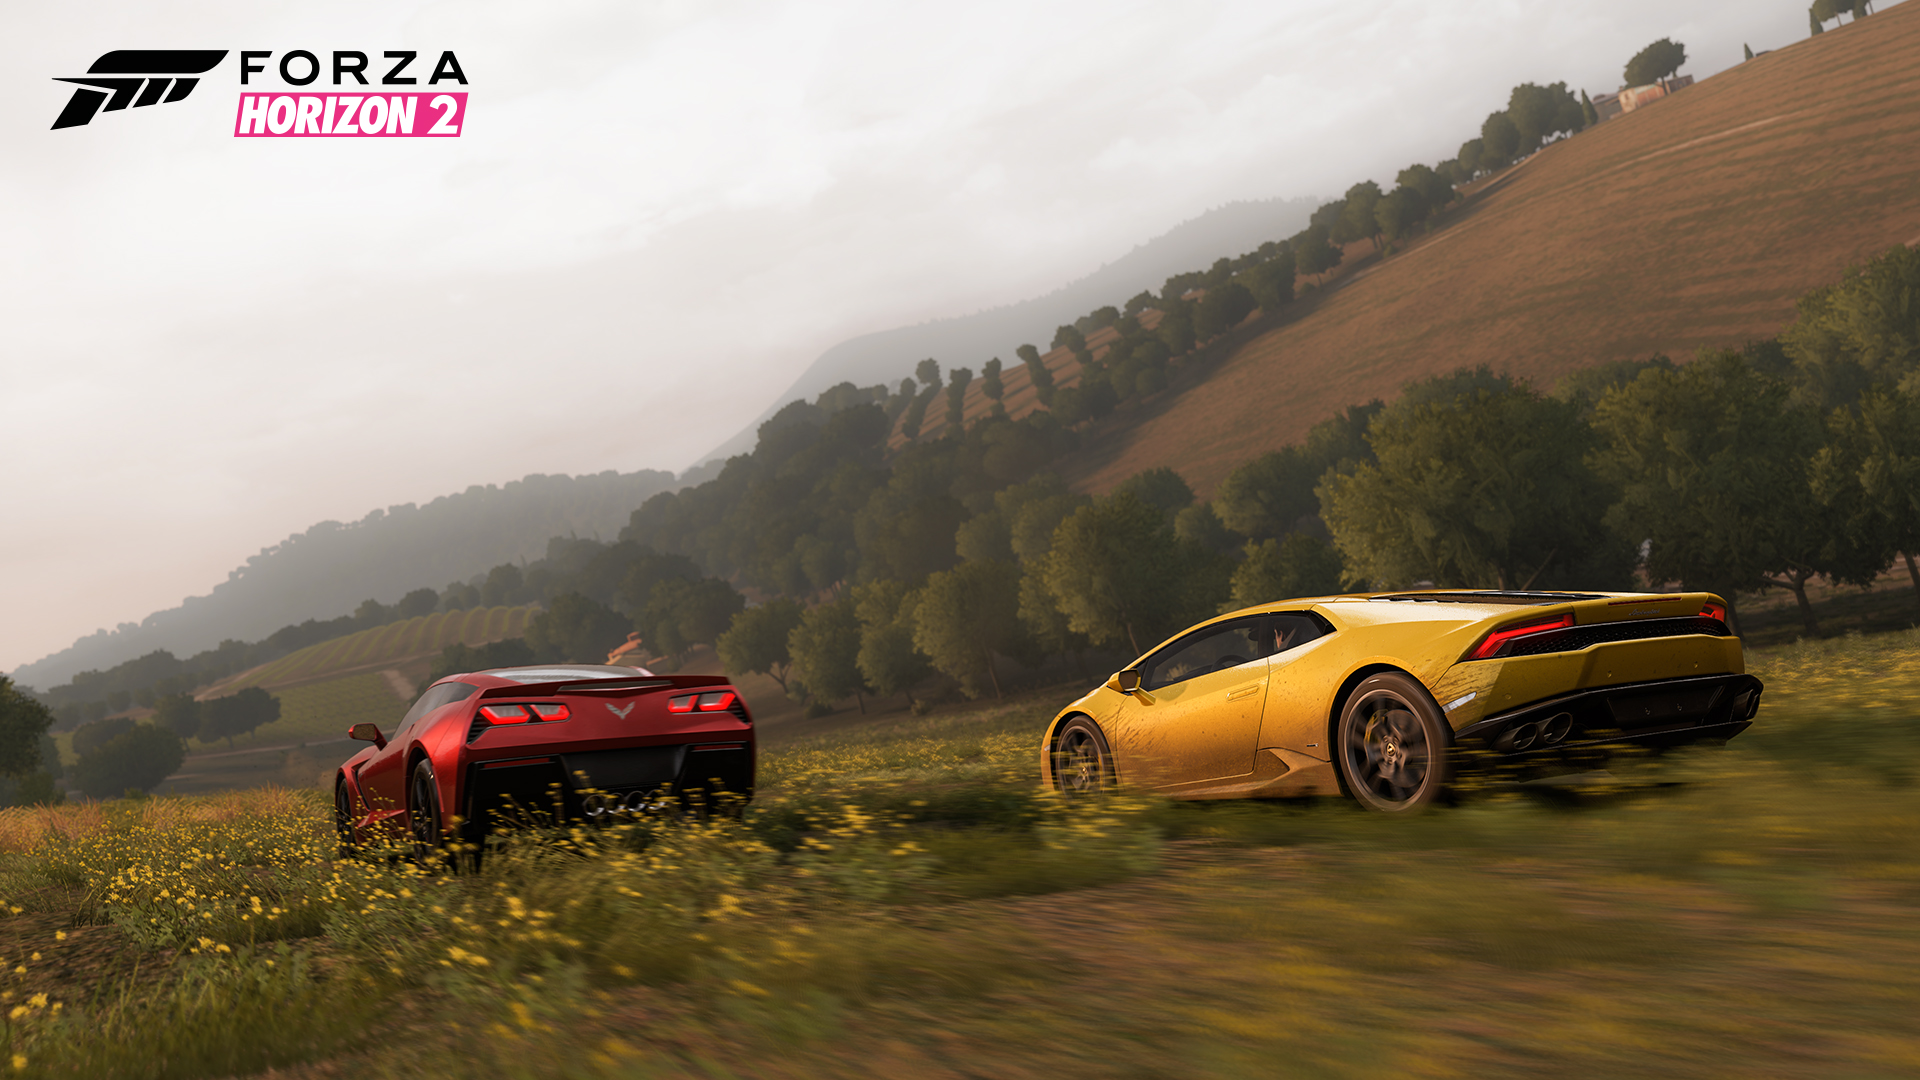 The first Forza Horizon 3 footage has possibly leaked